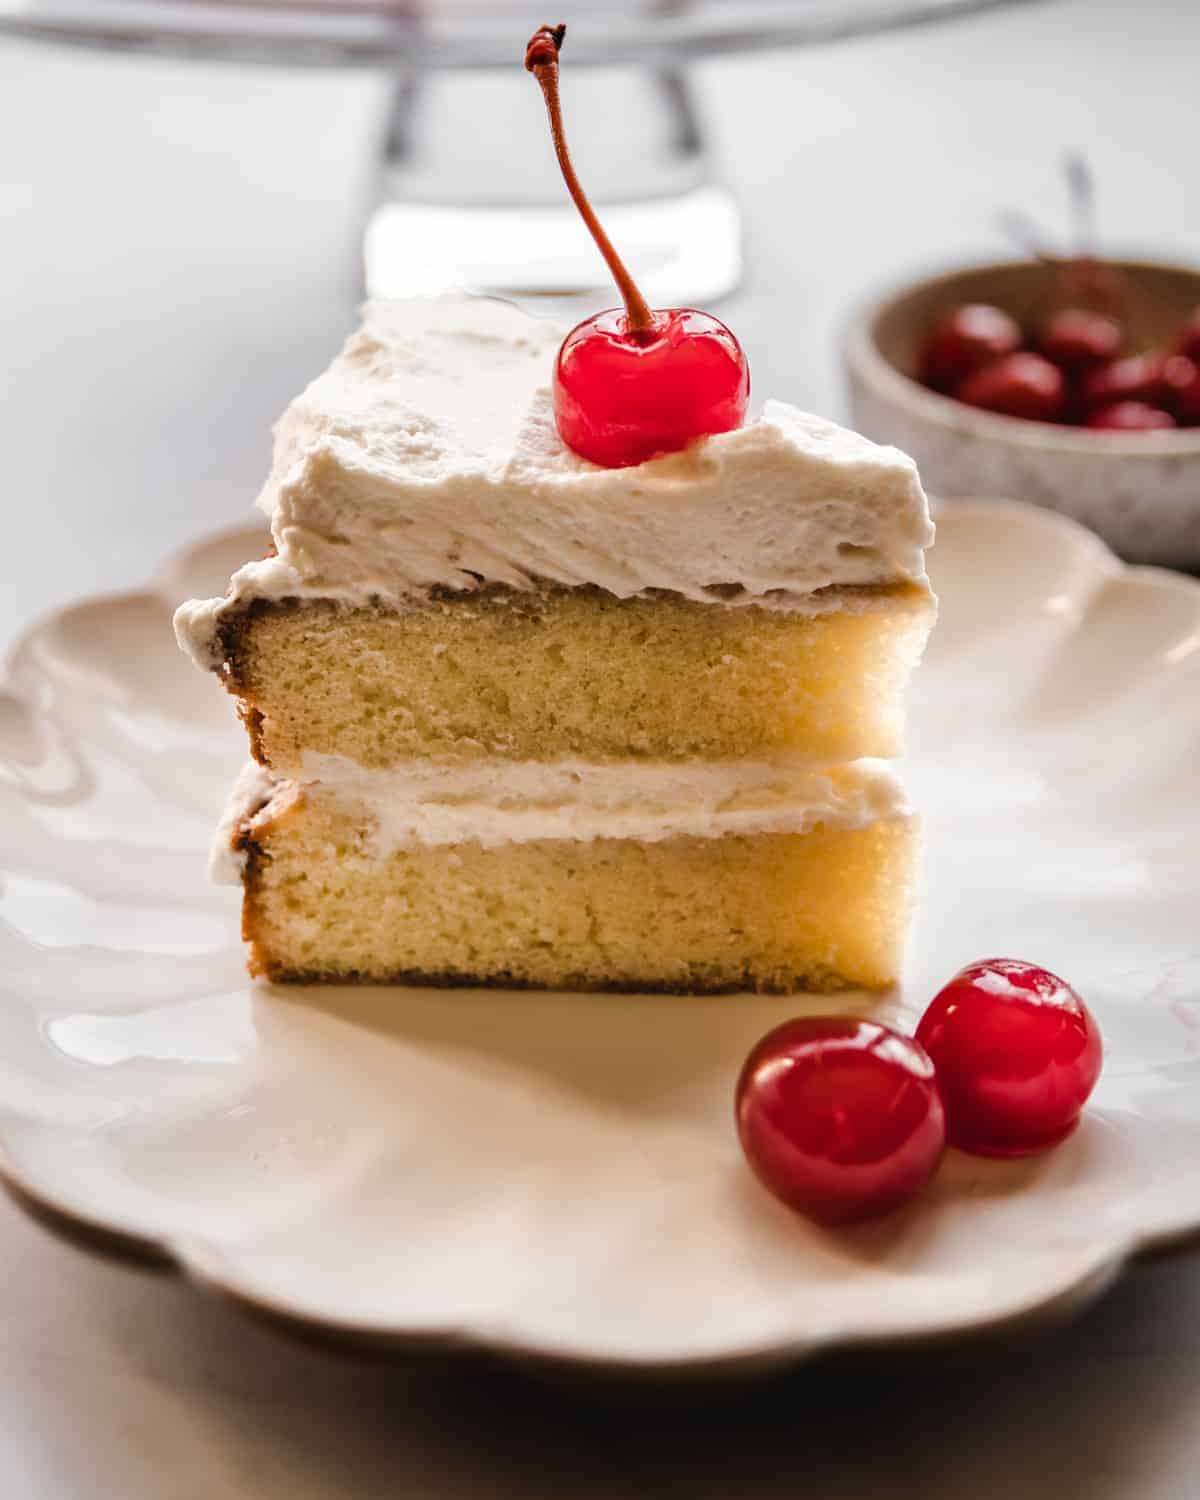 single slice of almond layer cake on a plate with maraschino cherries